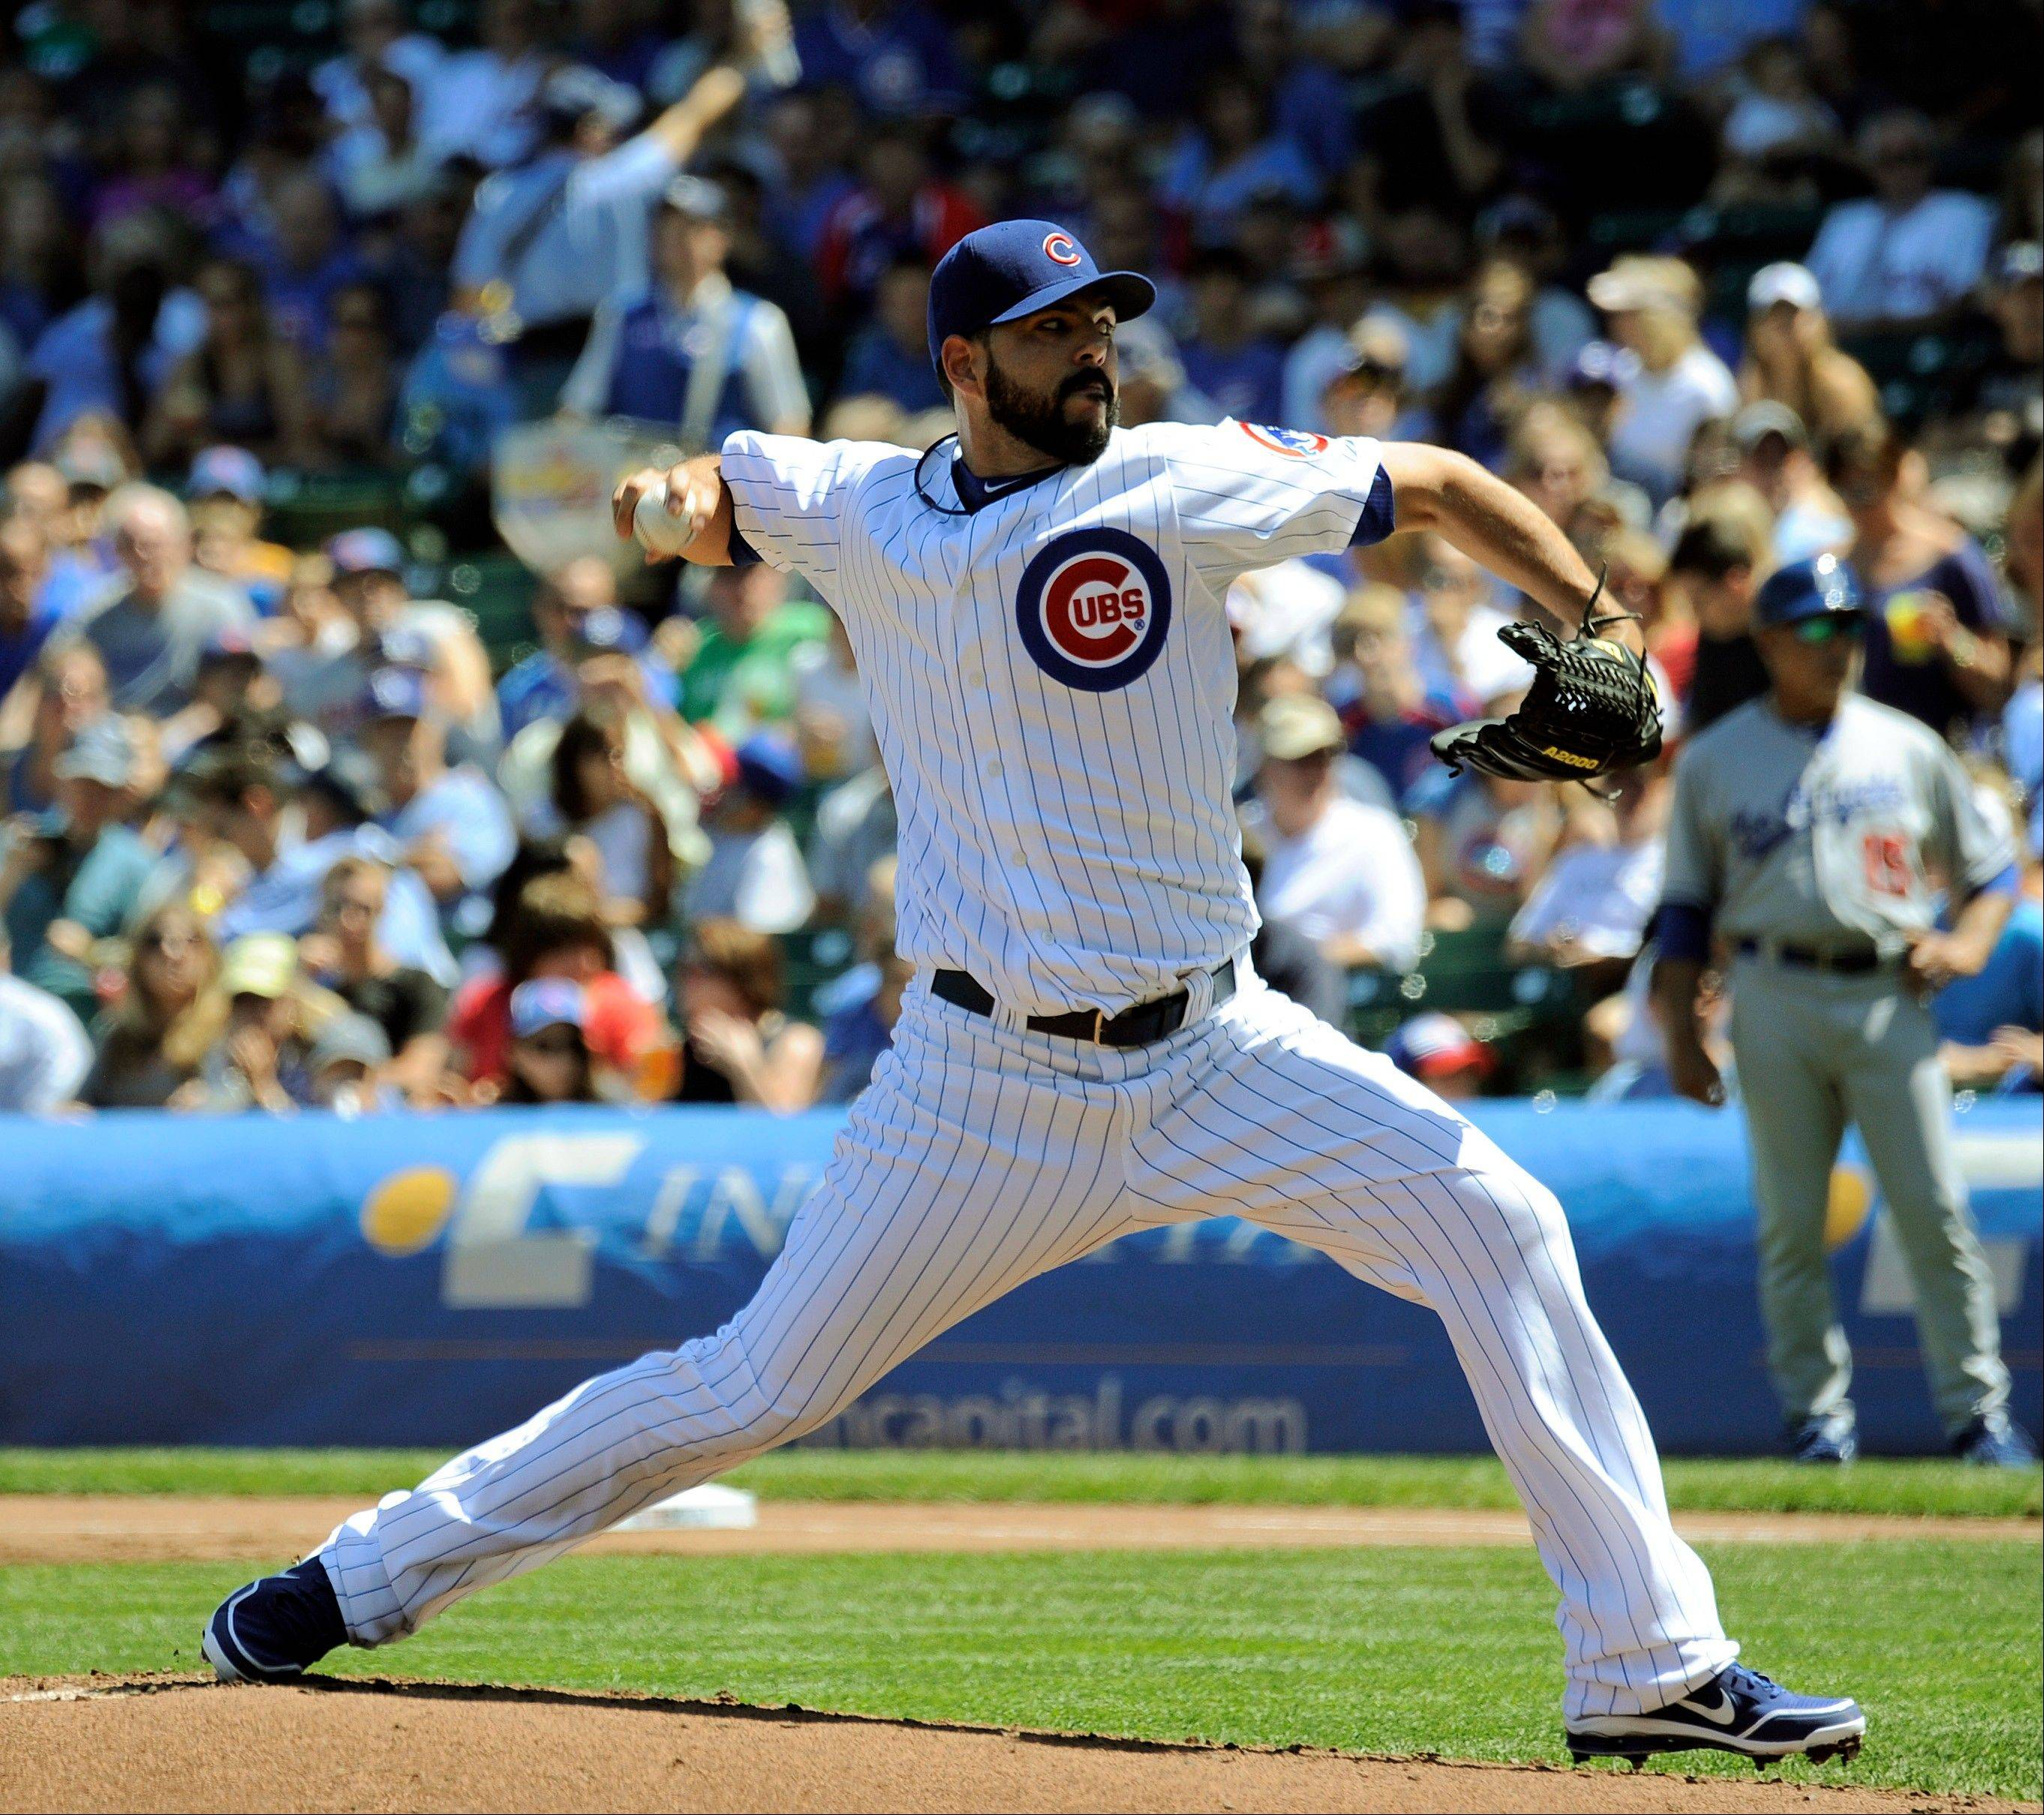 Cubs starting pitcher Carlos Villanueva allowed only 1 run and 2 hits in 6 innings Sunday but still took the loss against the Dodgers at Wrigley Field.